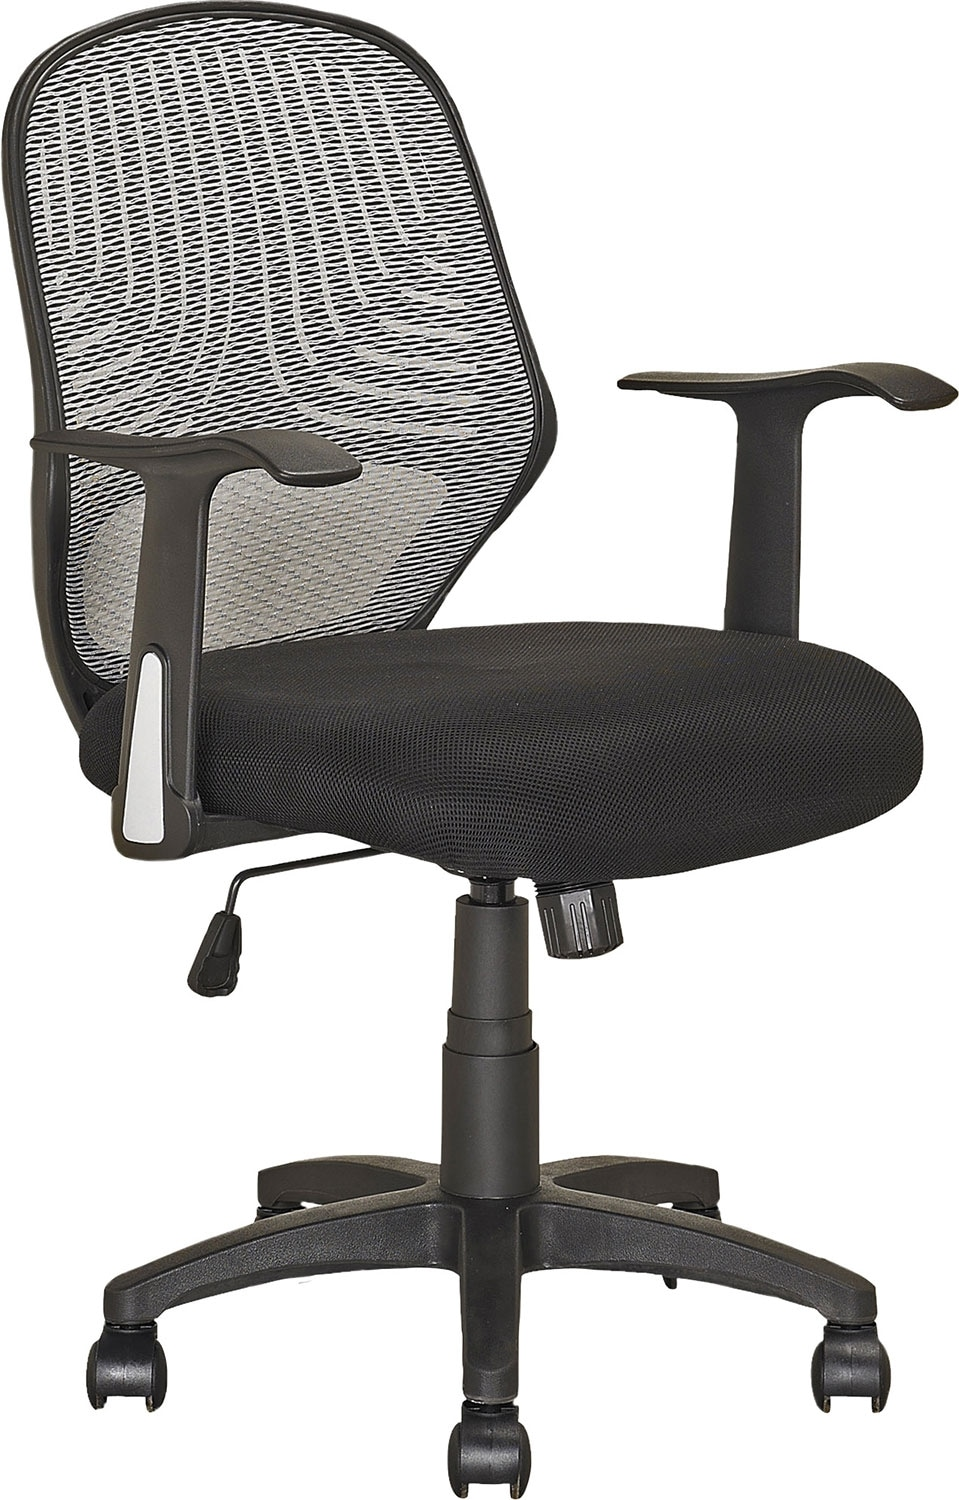 Home Office Furniture - Dallas Soft Fabric Office Chair with Back Support